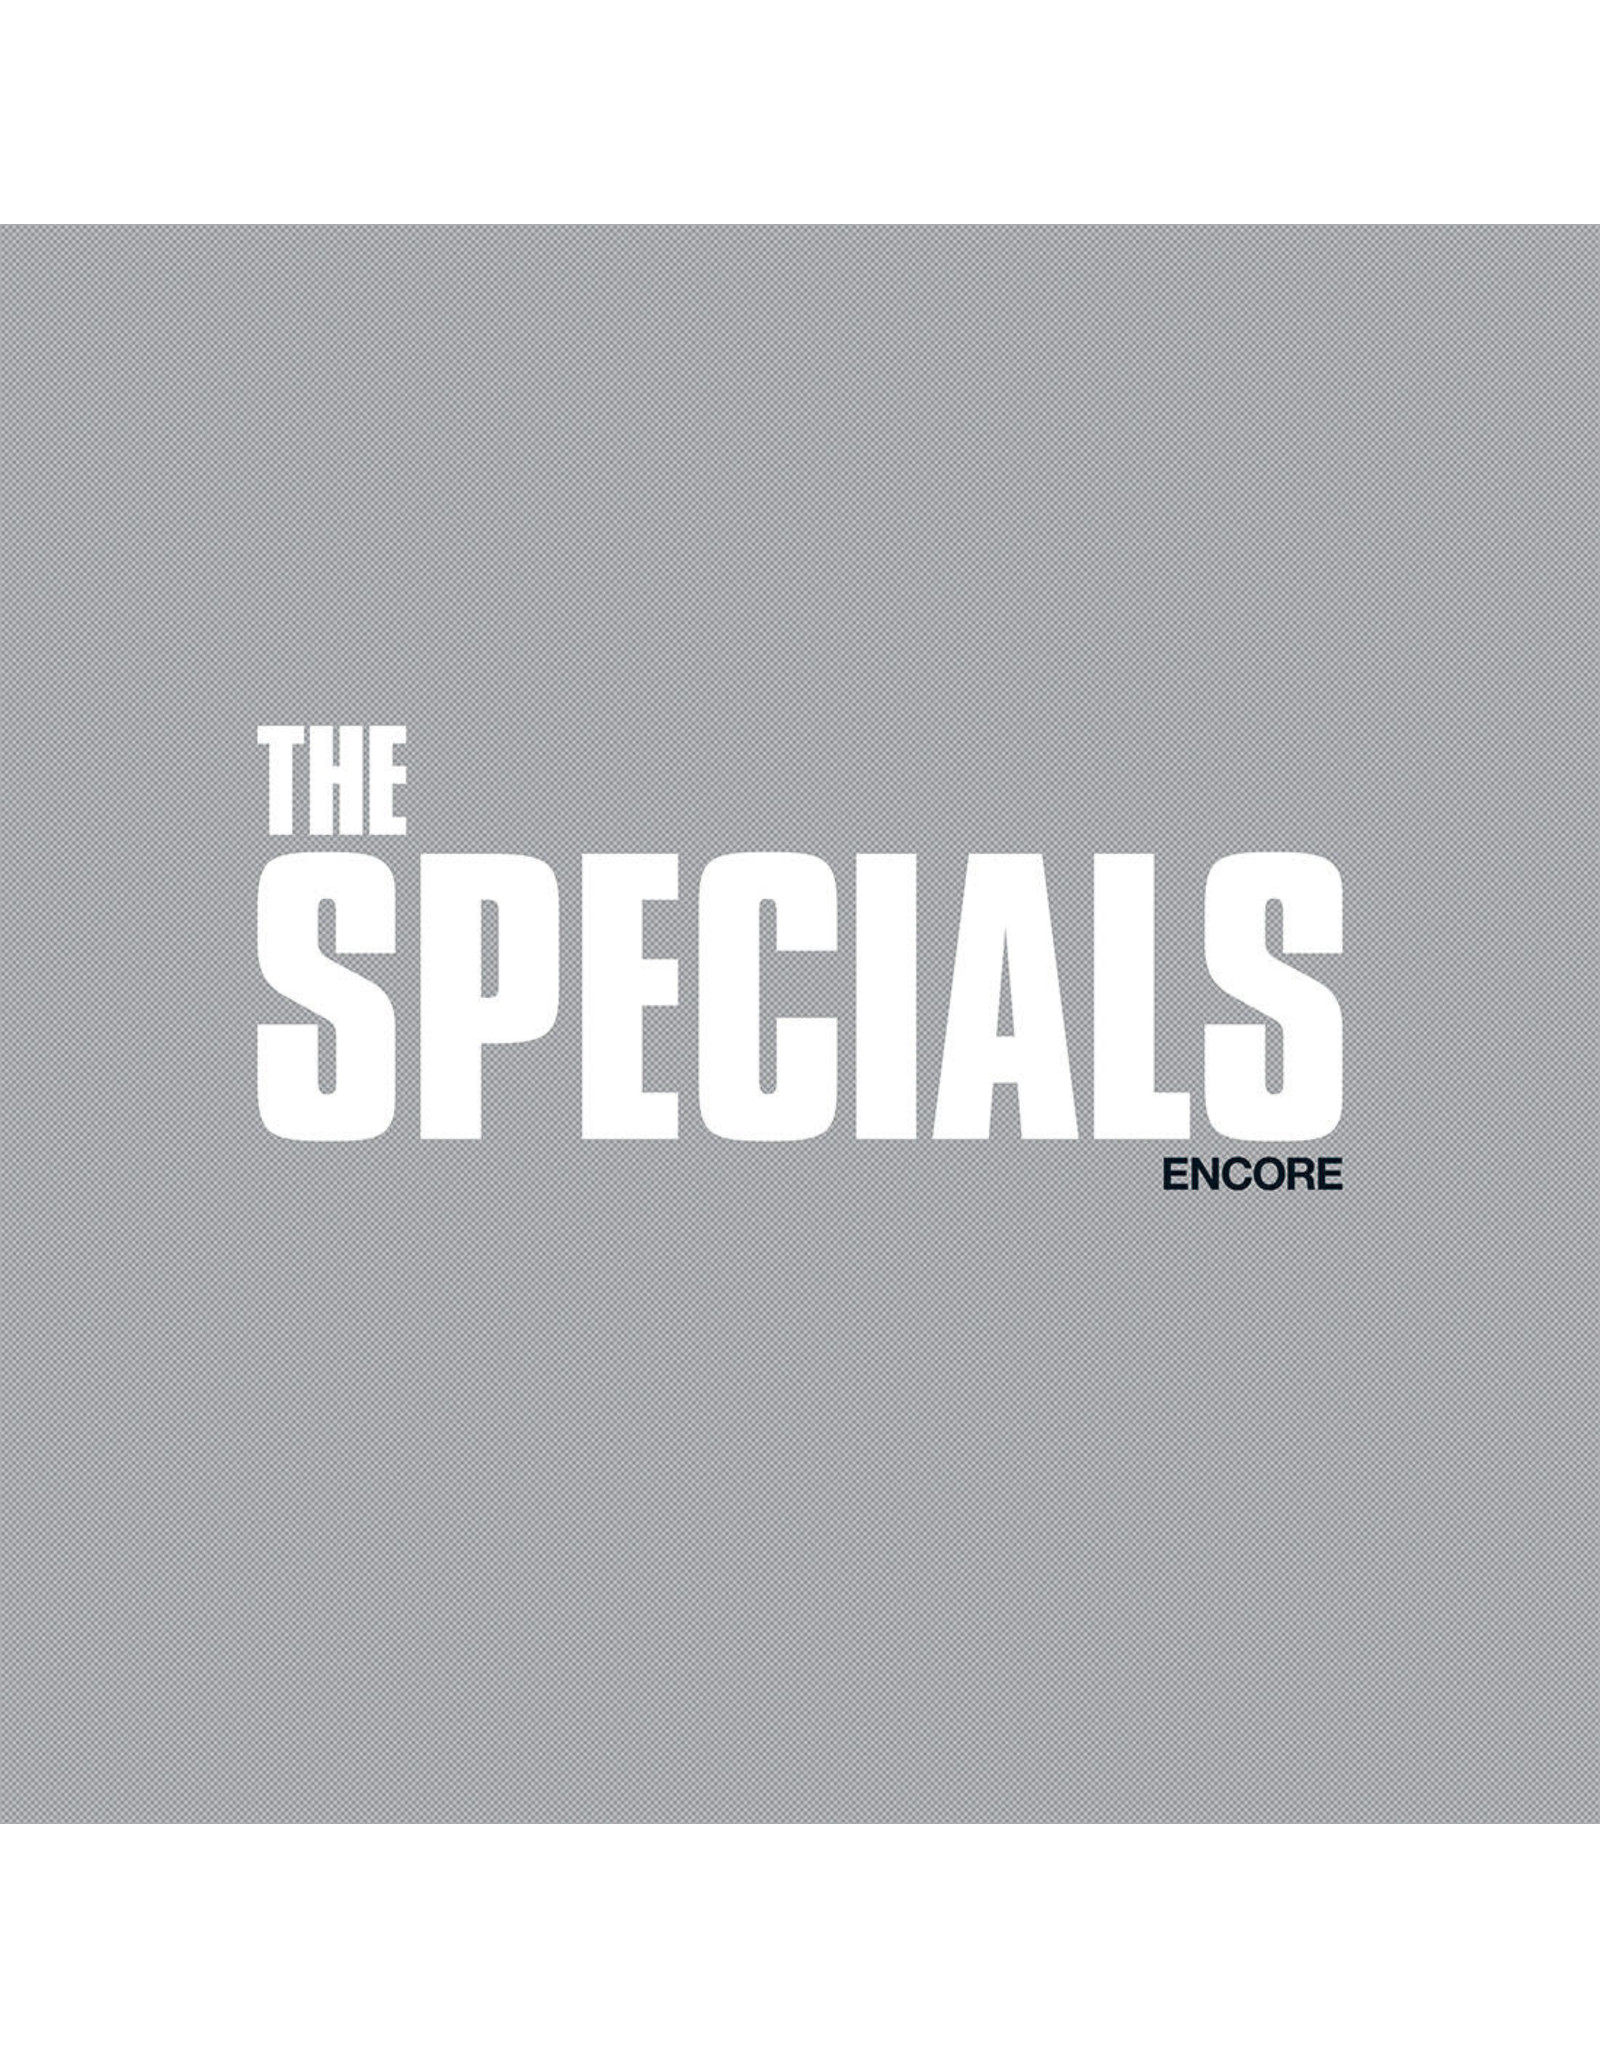 Specials - Encore CD